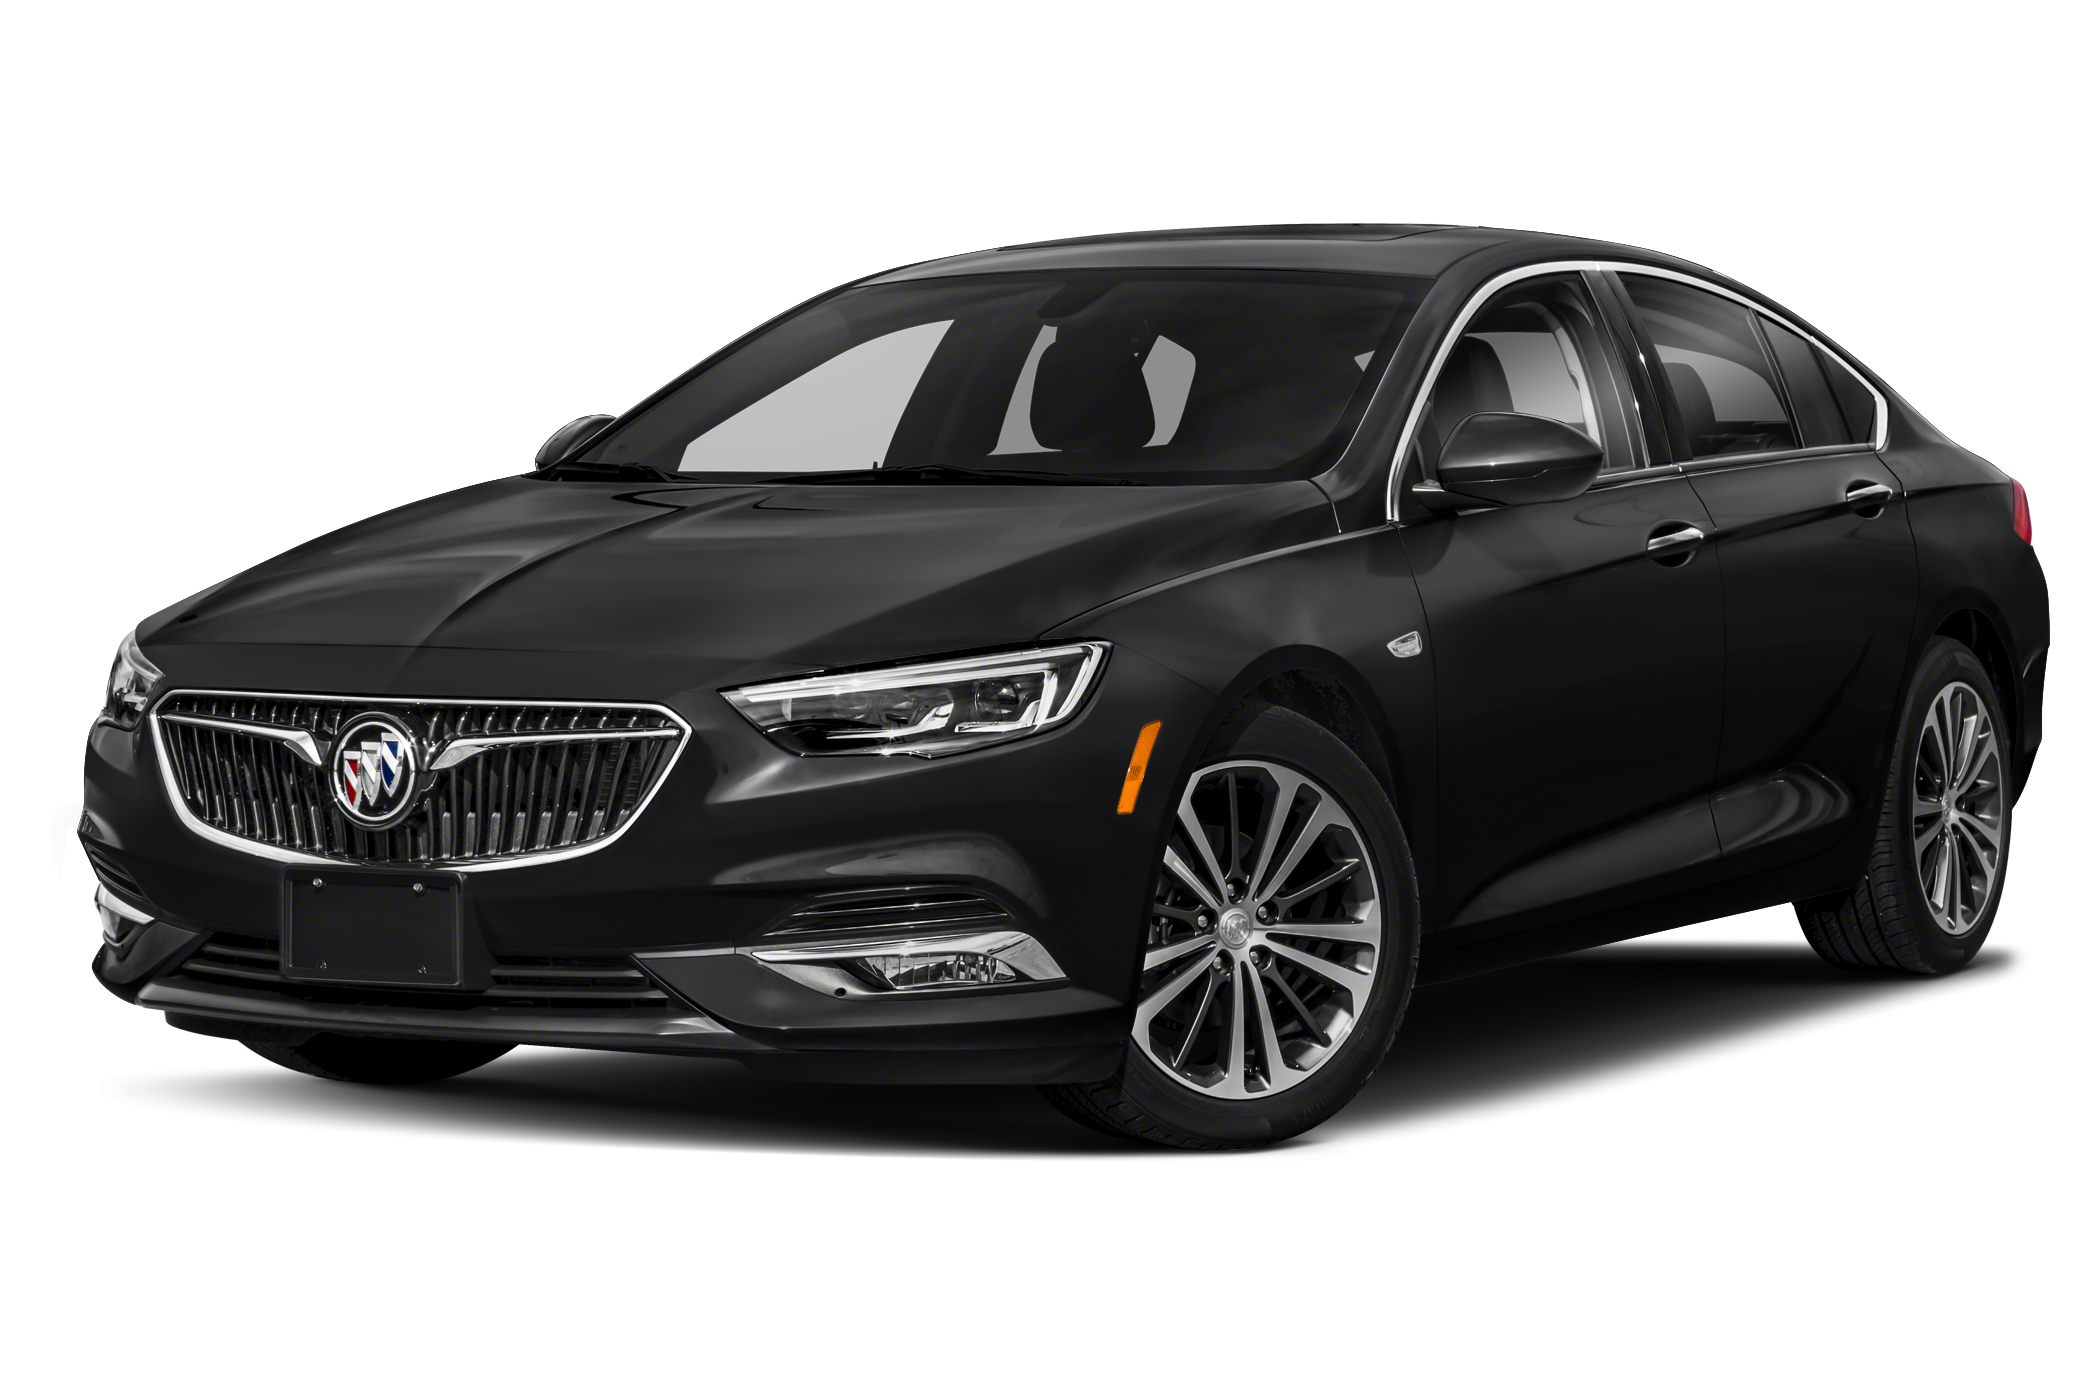 2020 Buick Regal Deals, Prices, Incentives & Leases New 2021 Buick Regal Gs Lease, Engine, Owners Manual